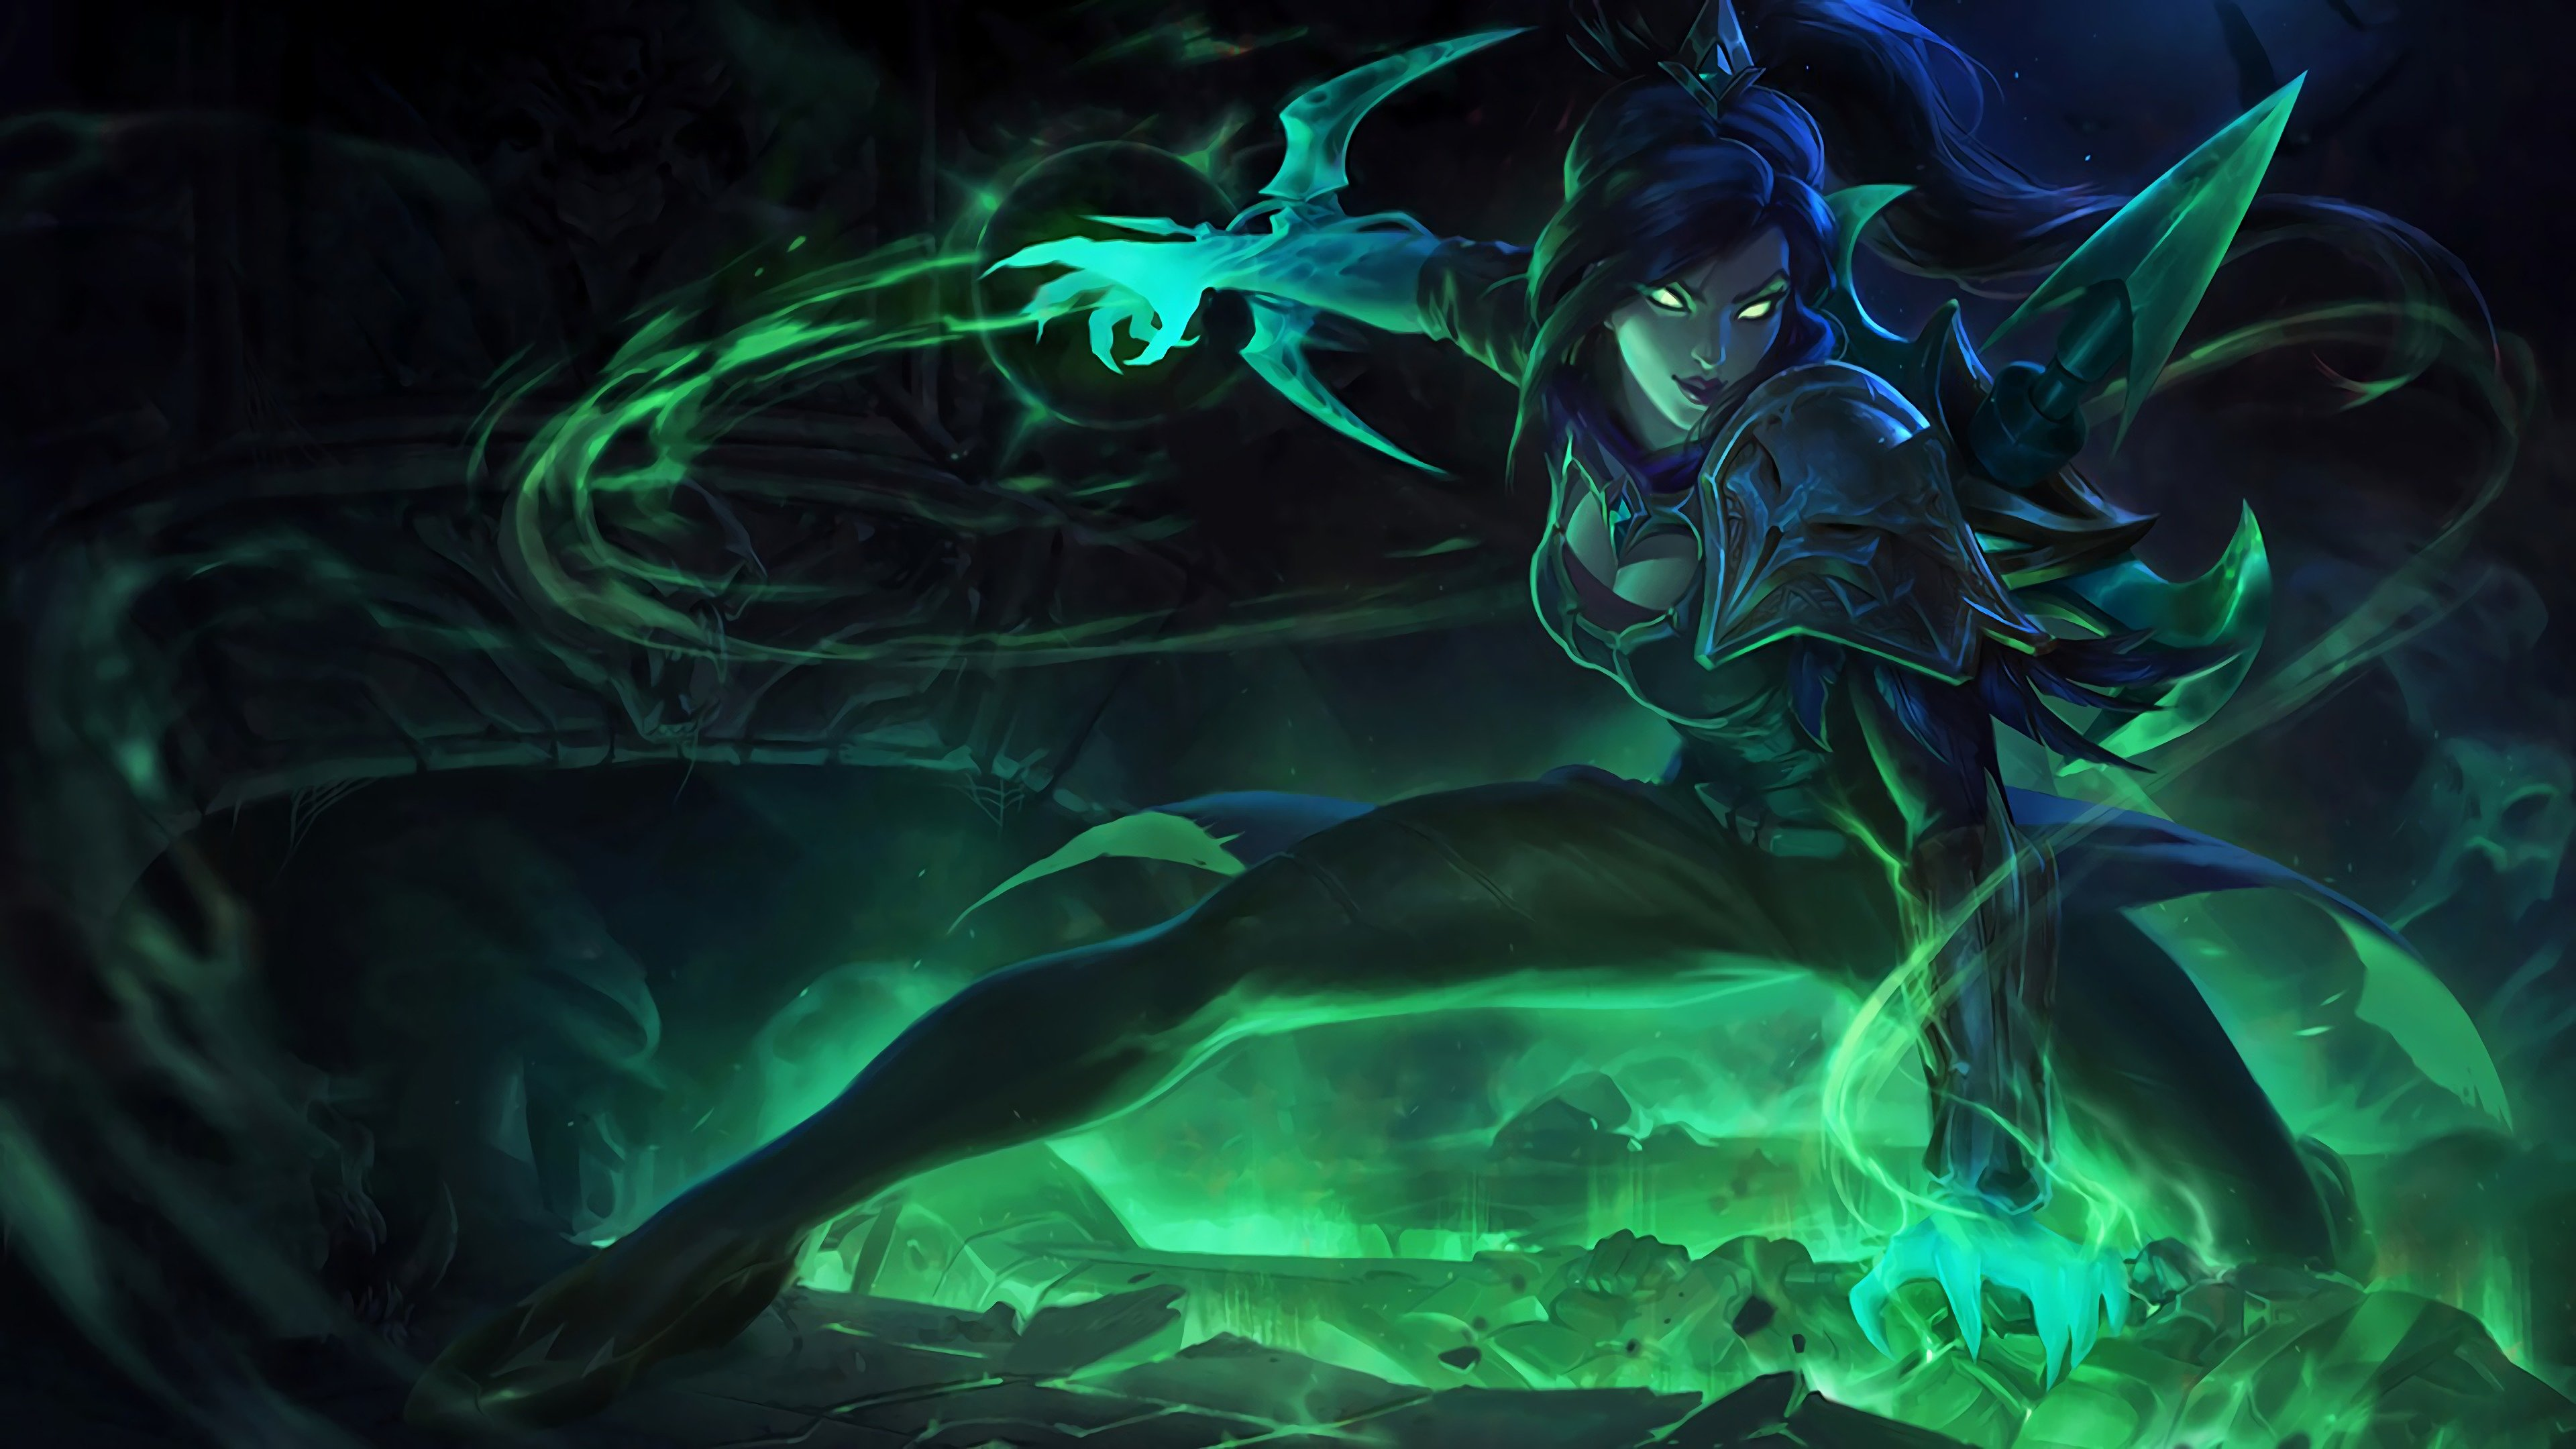 League Of Legends Lol Wallpapers 3840x2160 Ultra Hd 4k Desktop